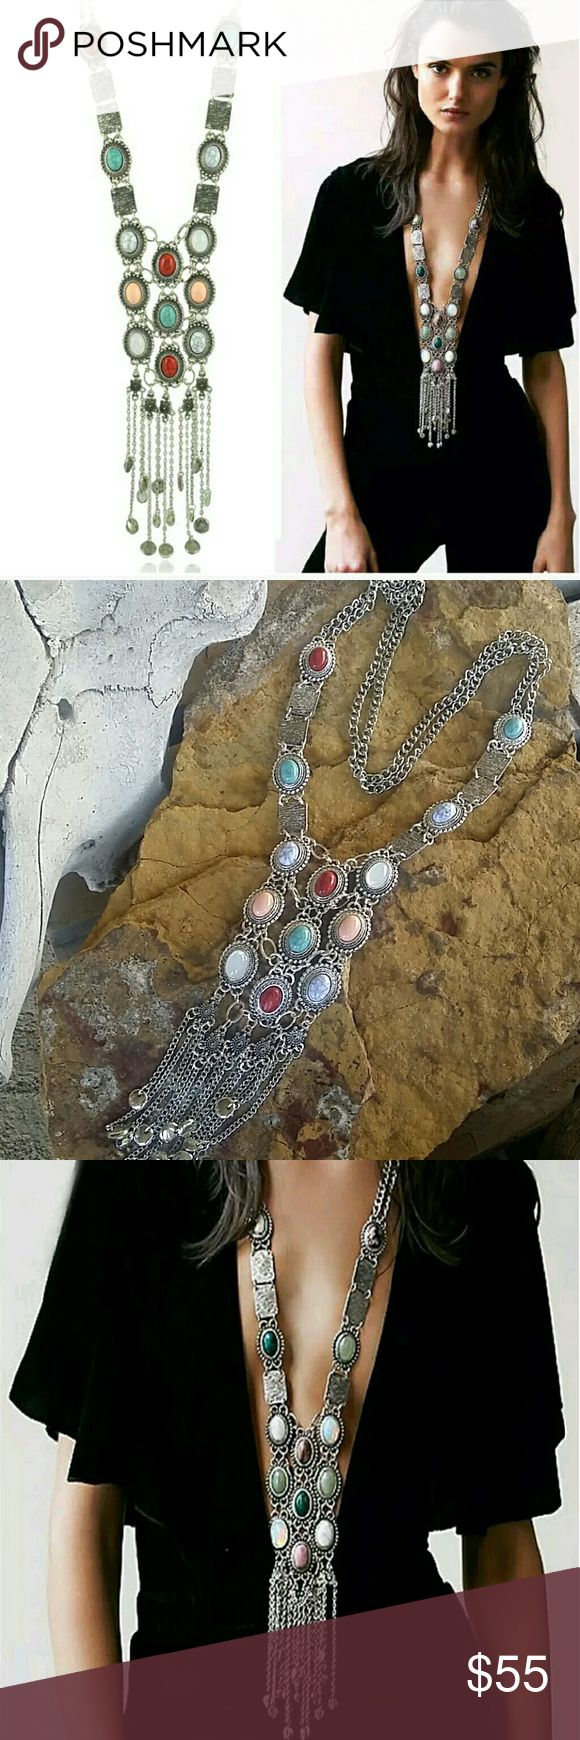 """??Boho Chic Long Necklace Stunning stunning necklace!  Silver tone lacey look bold statement piece. Red, turquoise, white/blue, clear opal, & peach colored faux stones. Long fringe & bead chain dangle finish off this great piece.  No latch, side on & off. 29"""" long drape with addition 8"""" dangle. Another one of my favorites!  ? Price Firm Unless Bundled  ? I Do Not Trade Boutique  Jewelry Necklaces"""